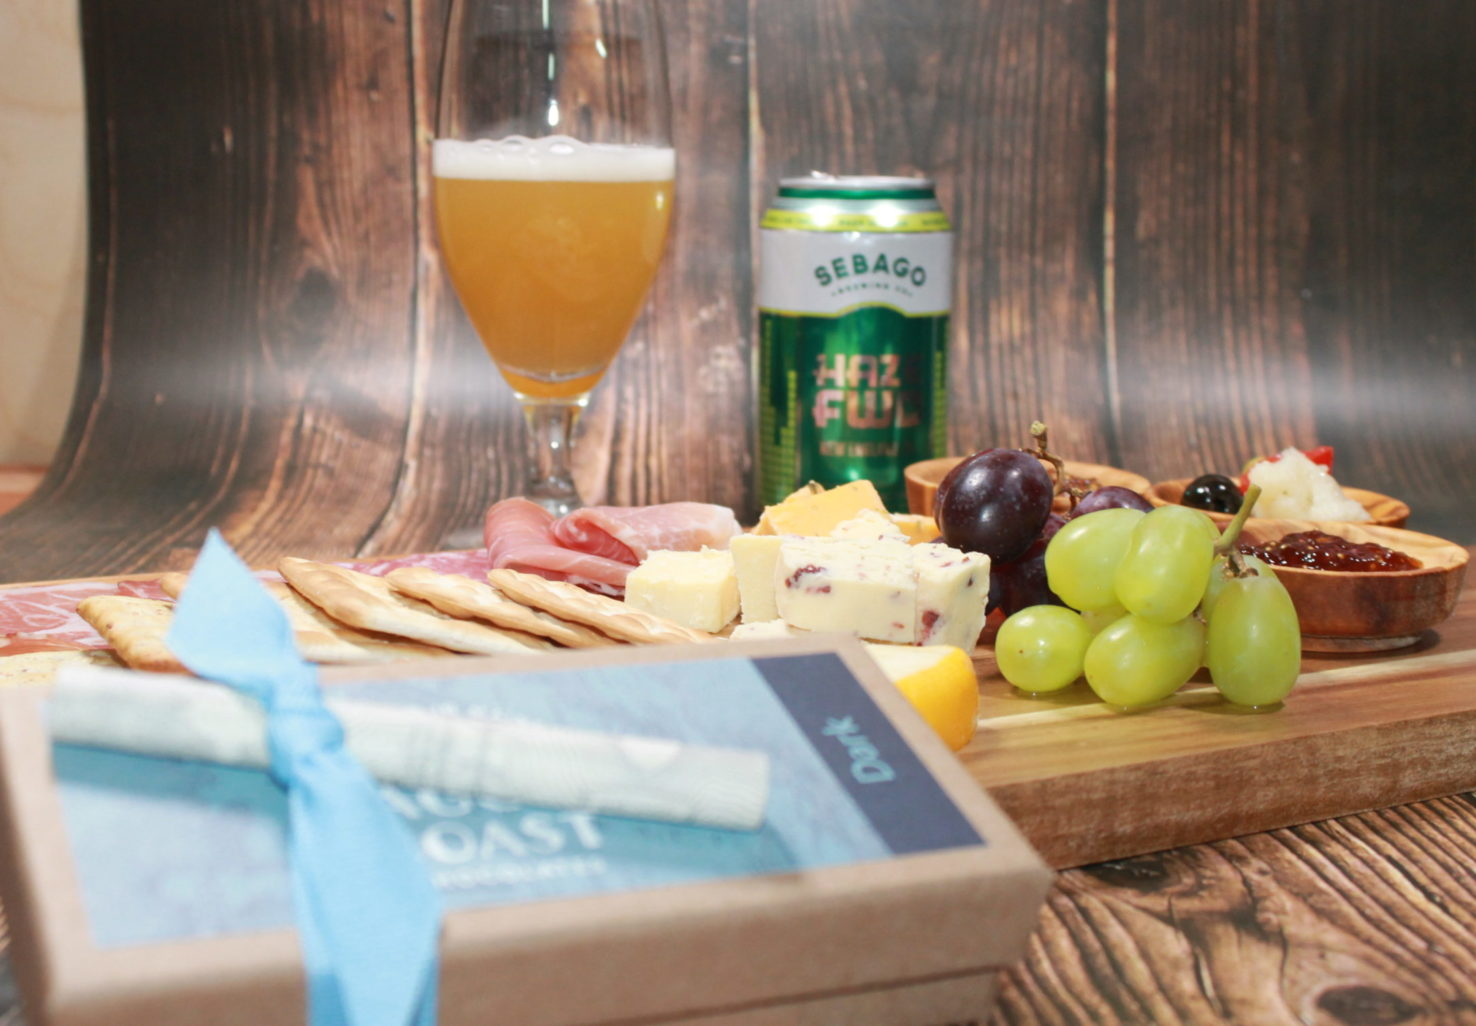 meat and cheese board with can and glass of beer, box of chocolates